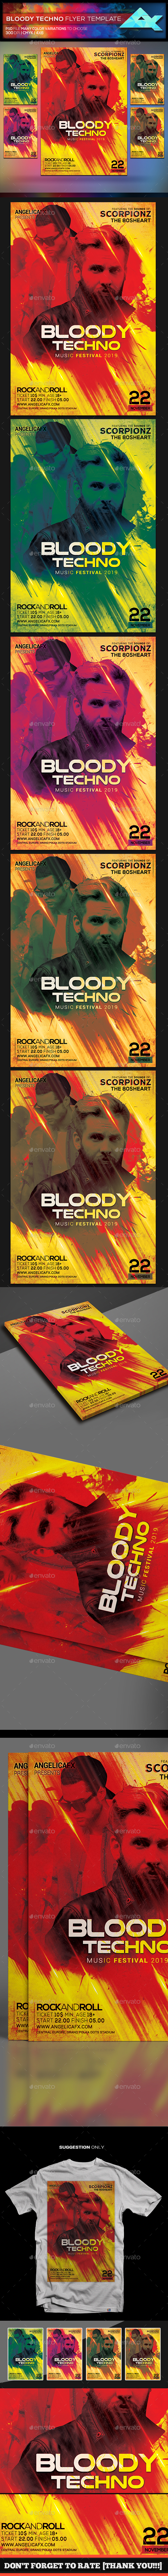 Bloody Techno Music Festival Flyer Template - Flyers Print Templates